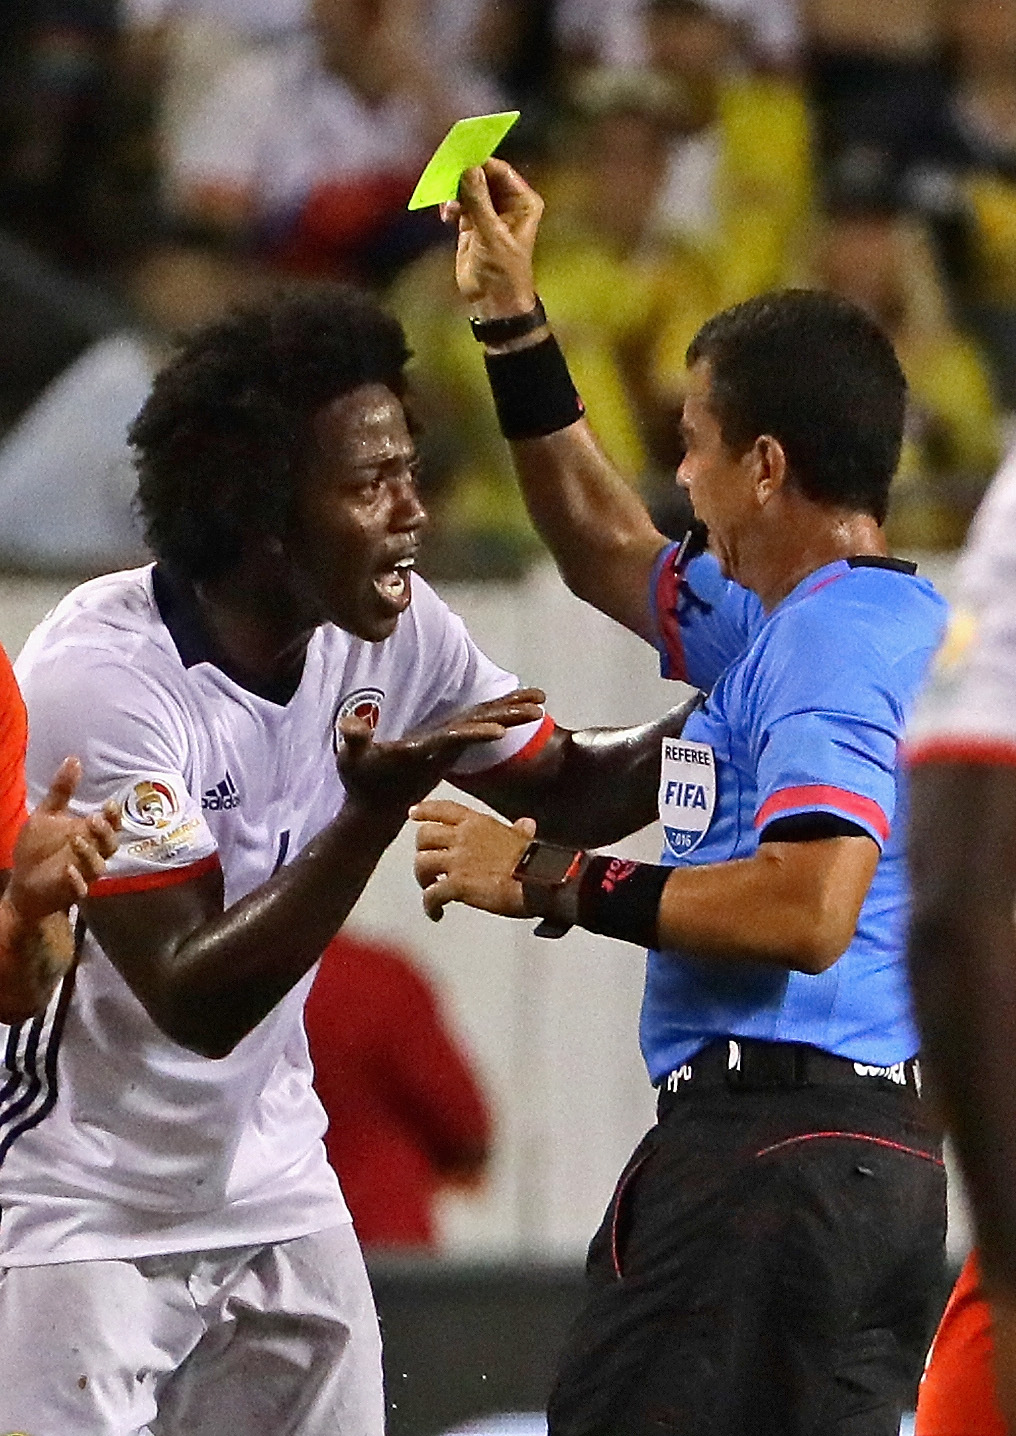 Colombia argues with referee Joel Aguilar Chicas after being given his second yellow card against Chile during a semi-final match in the 2016 Copa America Centernario at Soldier Field on June 22, 2016 in Chicago, Illinois. Chile defeated Colombia 2-0